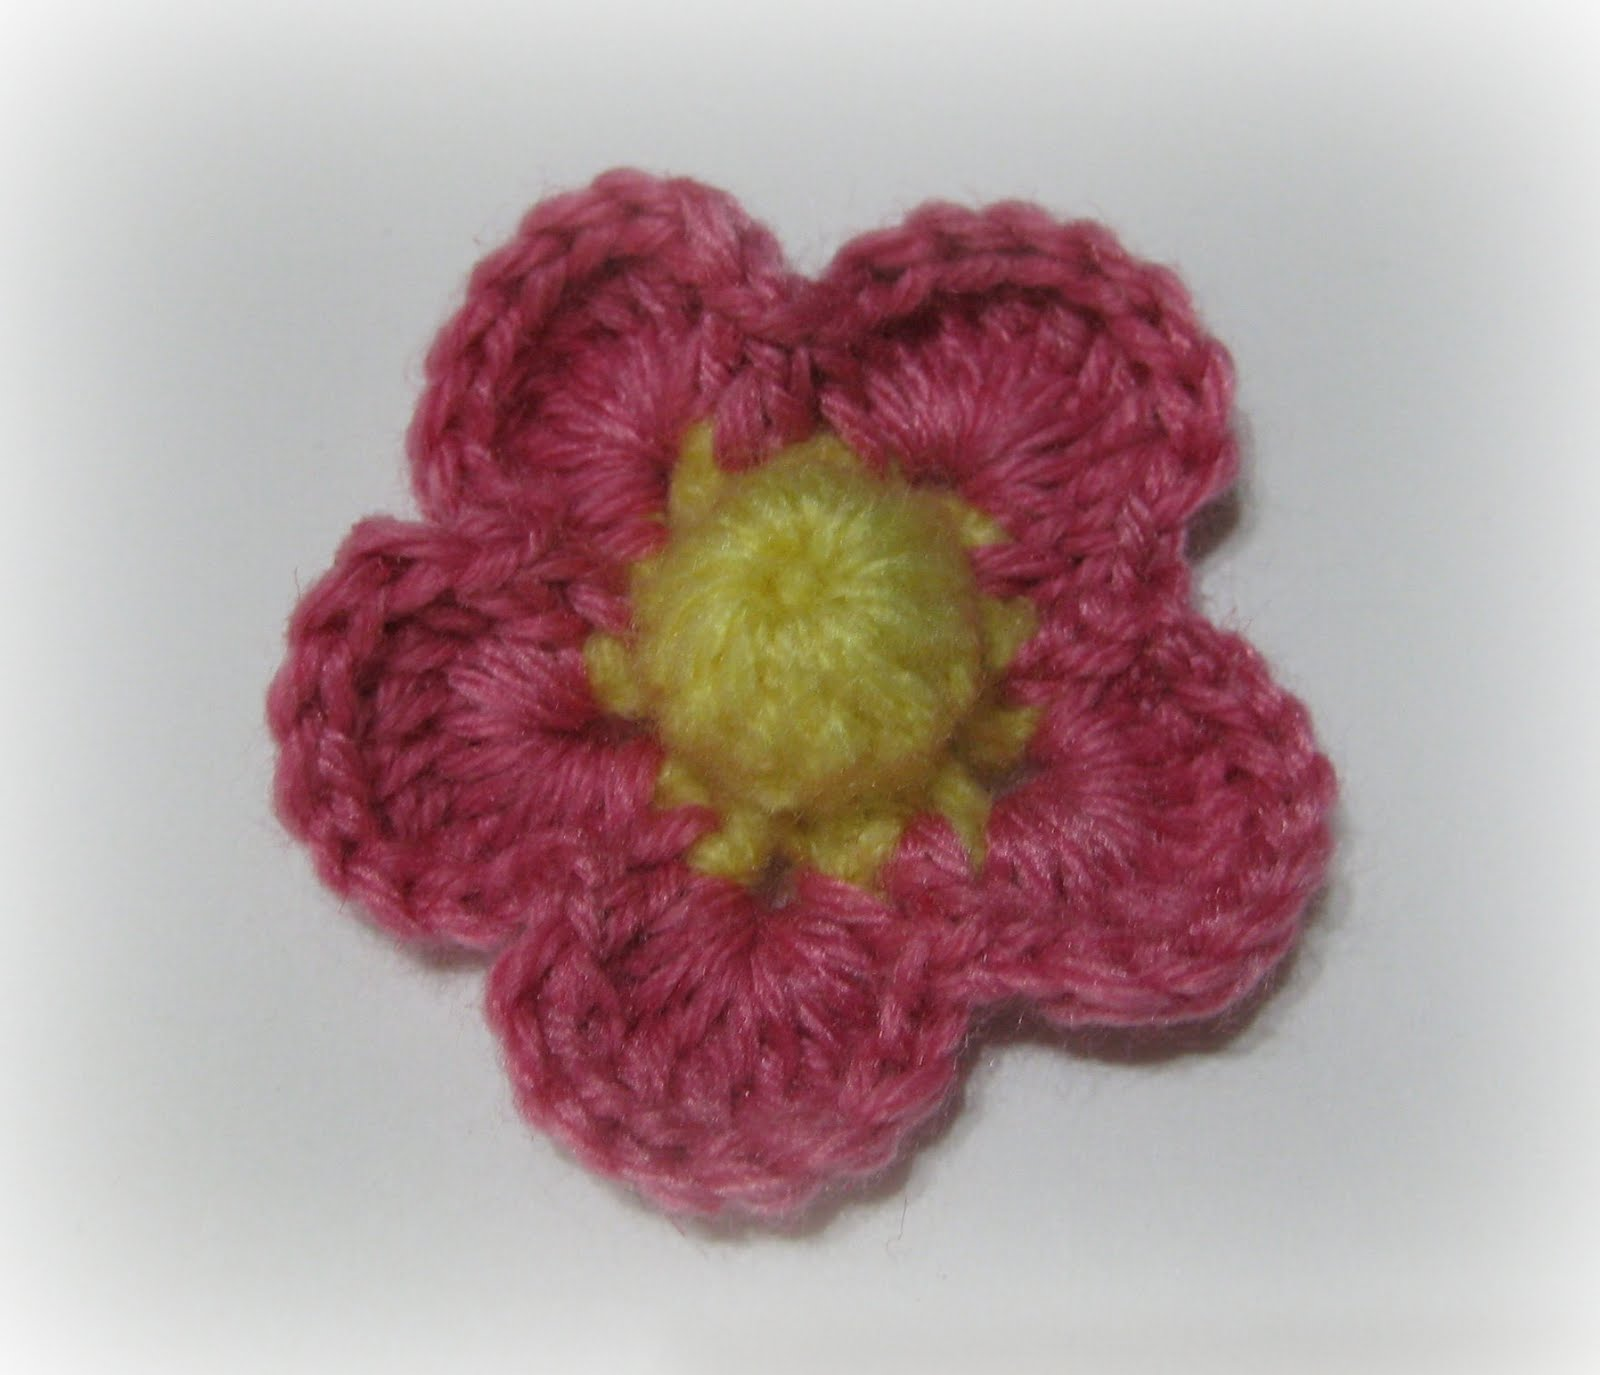 Crochet Patterns Of Flowers : Crochet Pattern Central - Free Flower Crochet Pattern Link Directory